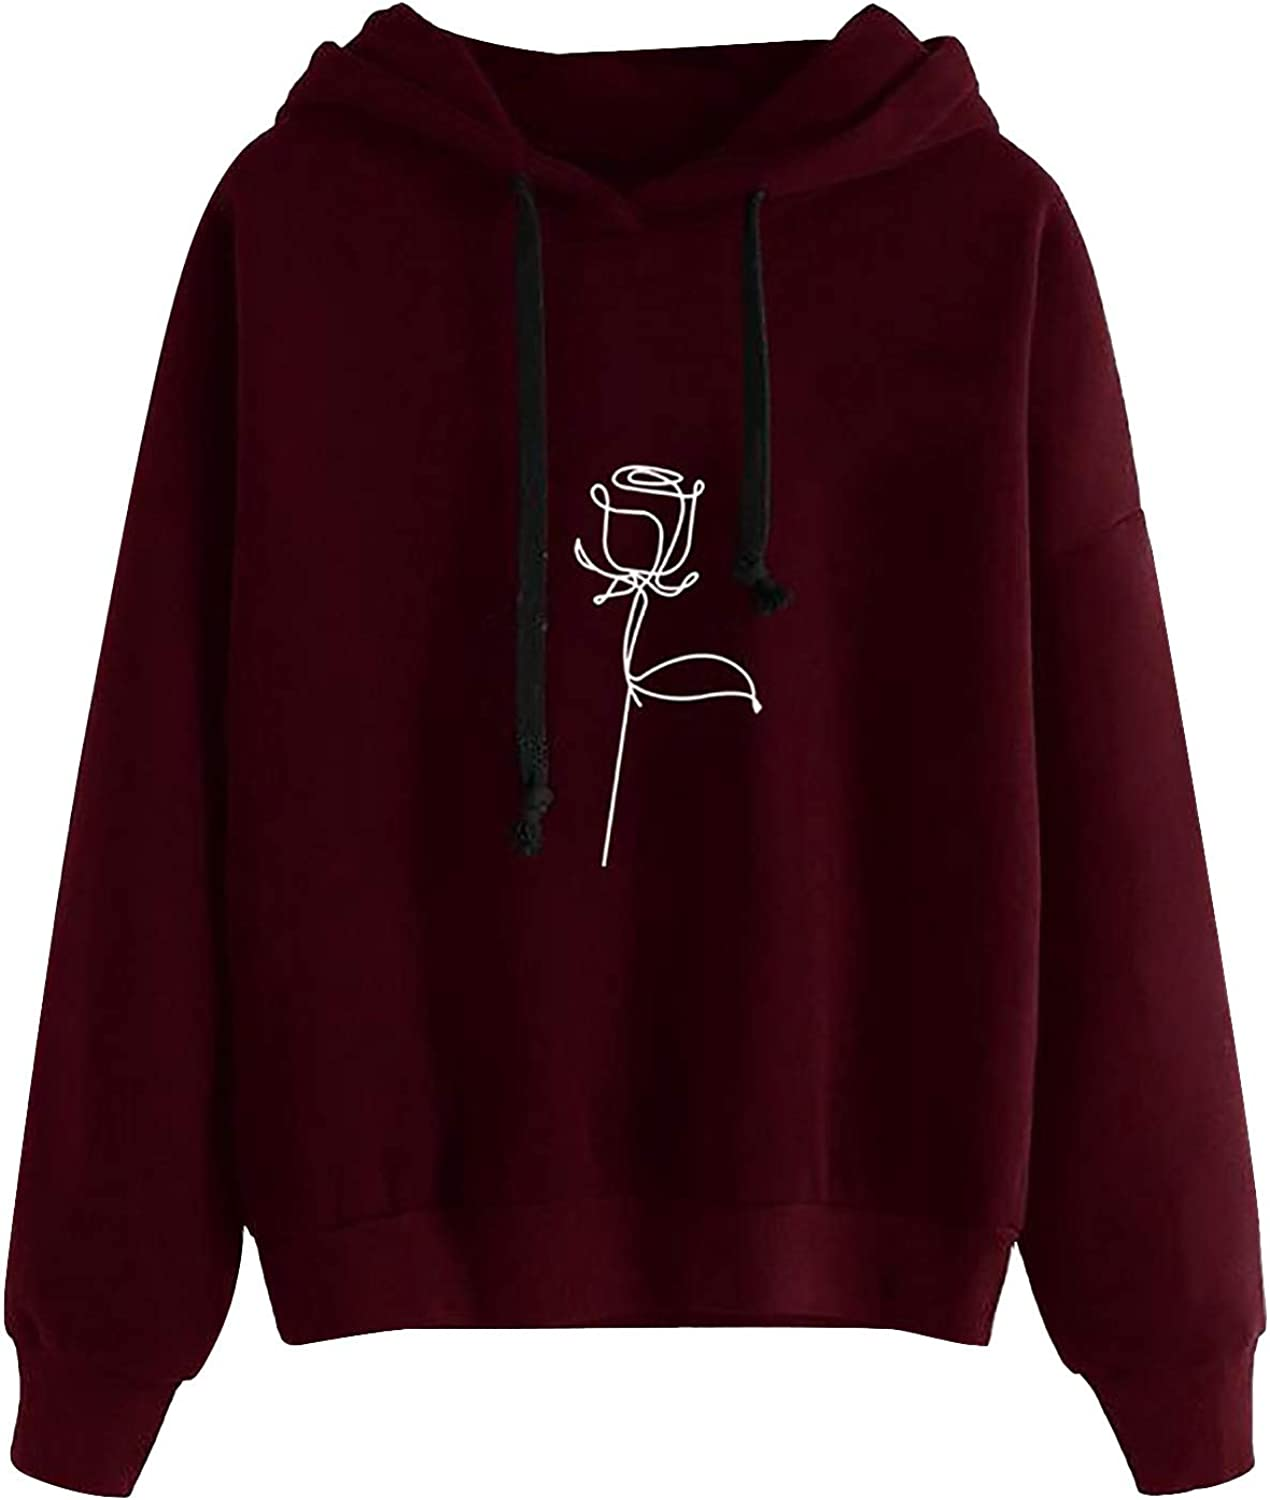 Sweatshirts for Women, Womens Long Sleeve Cute Graphic Hoodie and Sweatshirt Casual Loose Crewneck Pullover Tops